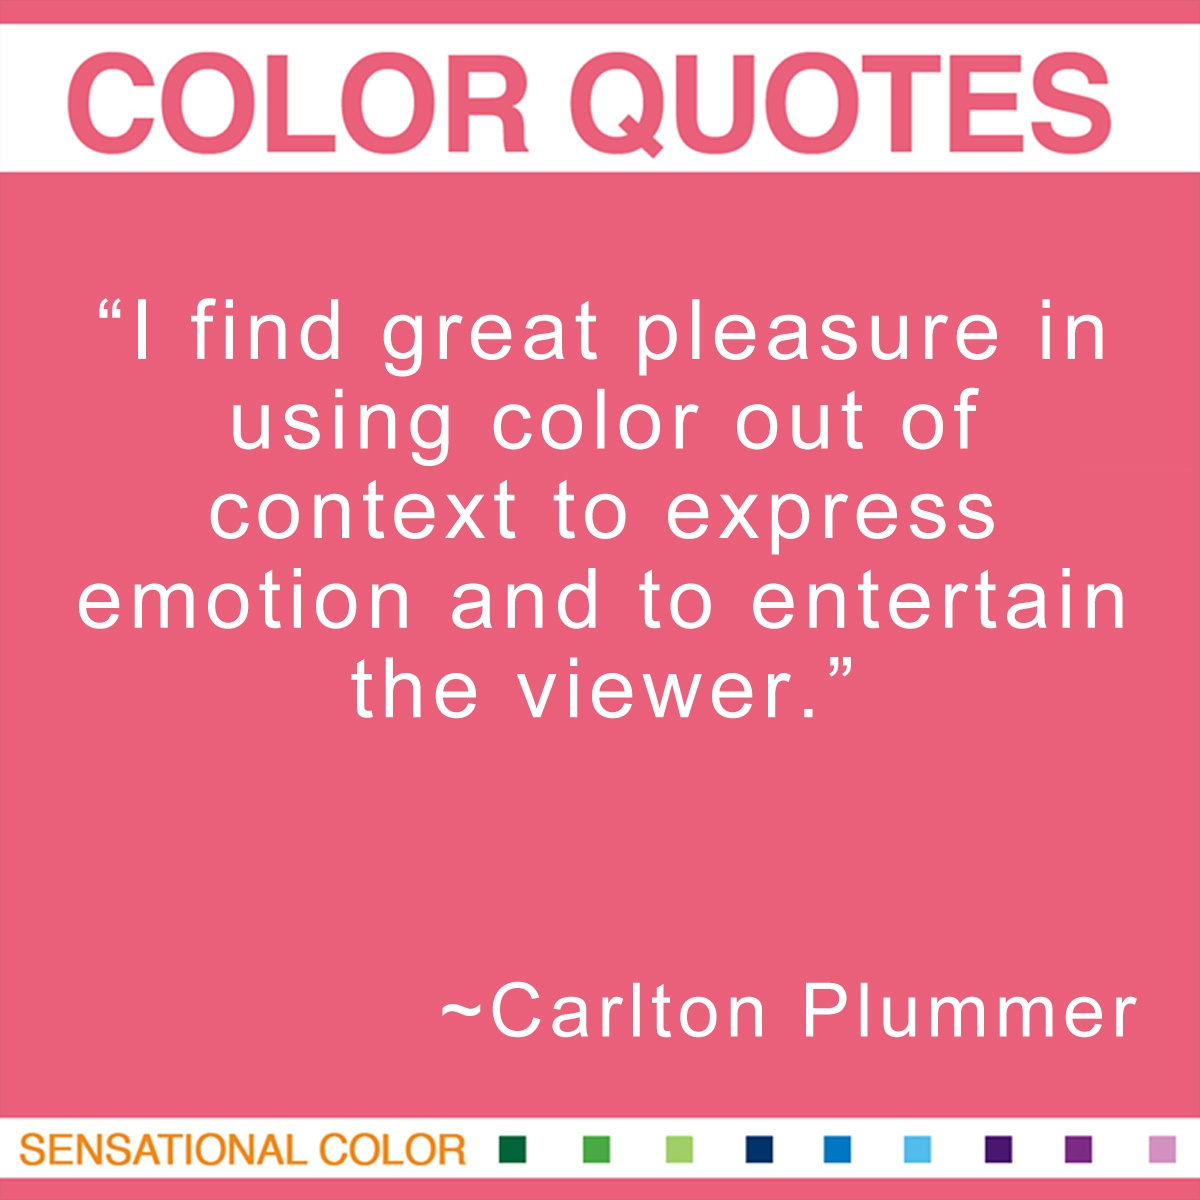 """I find great pleasure in using color out of context to express emotion and to entertain the viewer."" - Carlton Plummer"